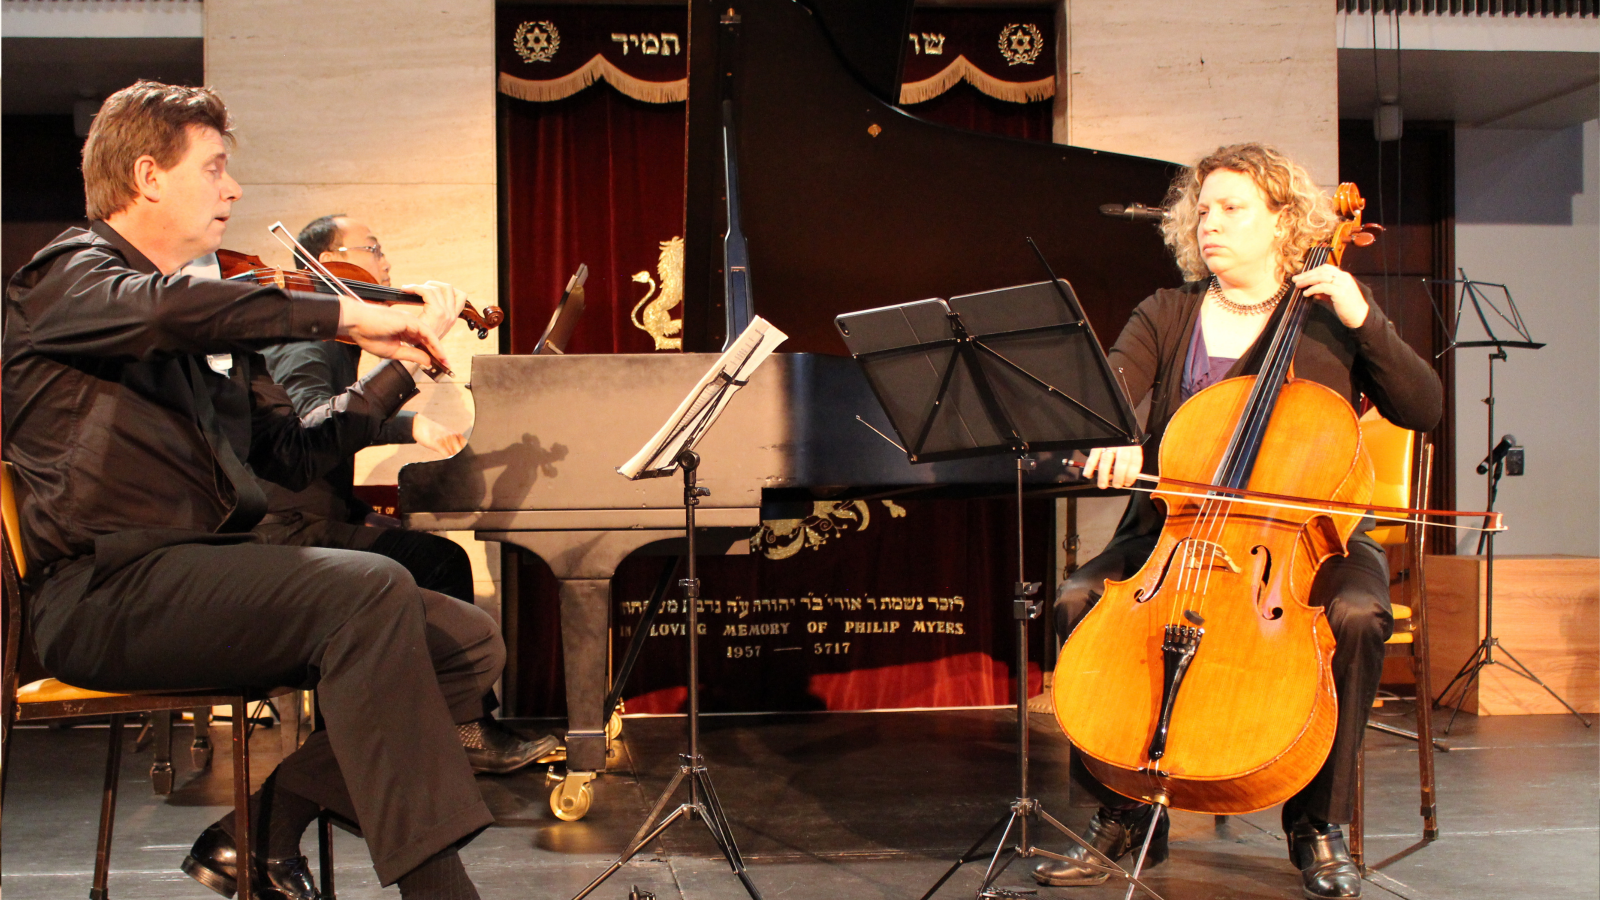 Three musicians playing violin, cello and piano on a stage